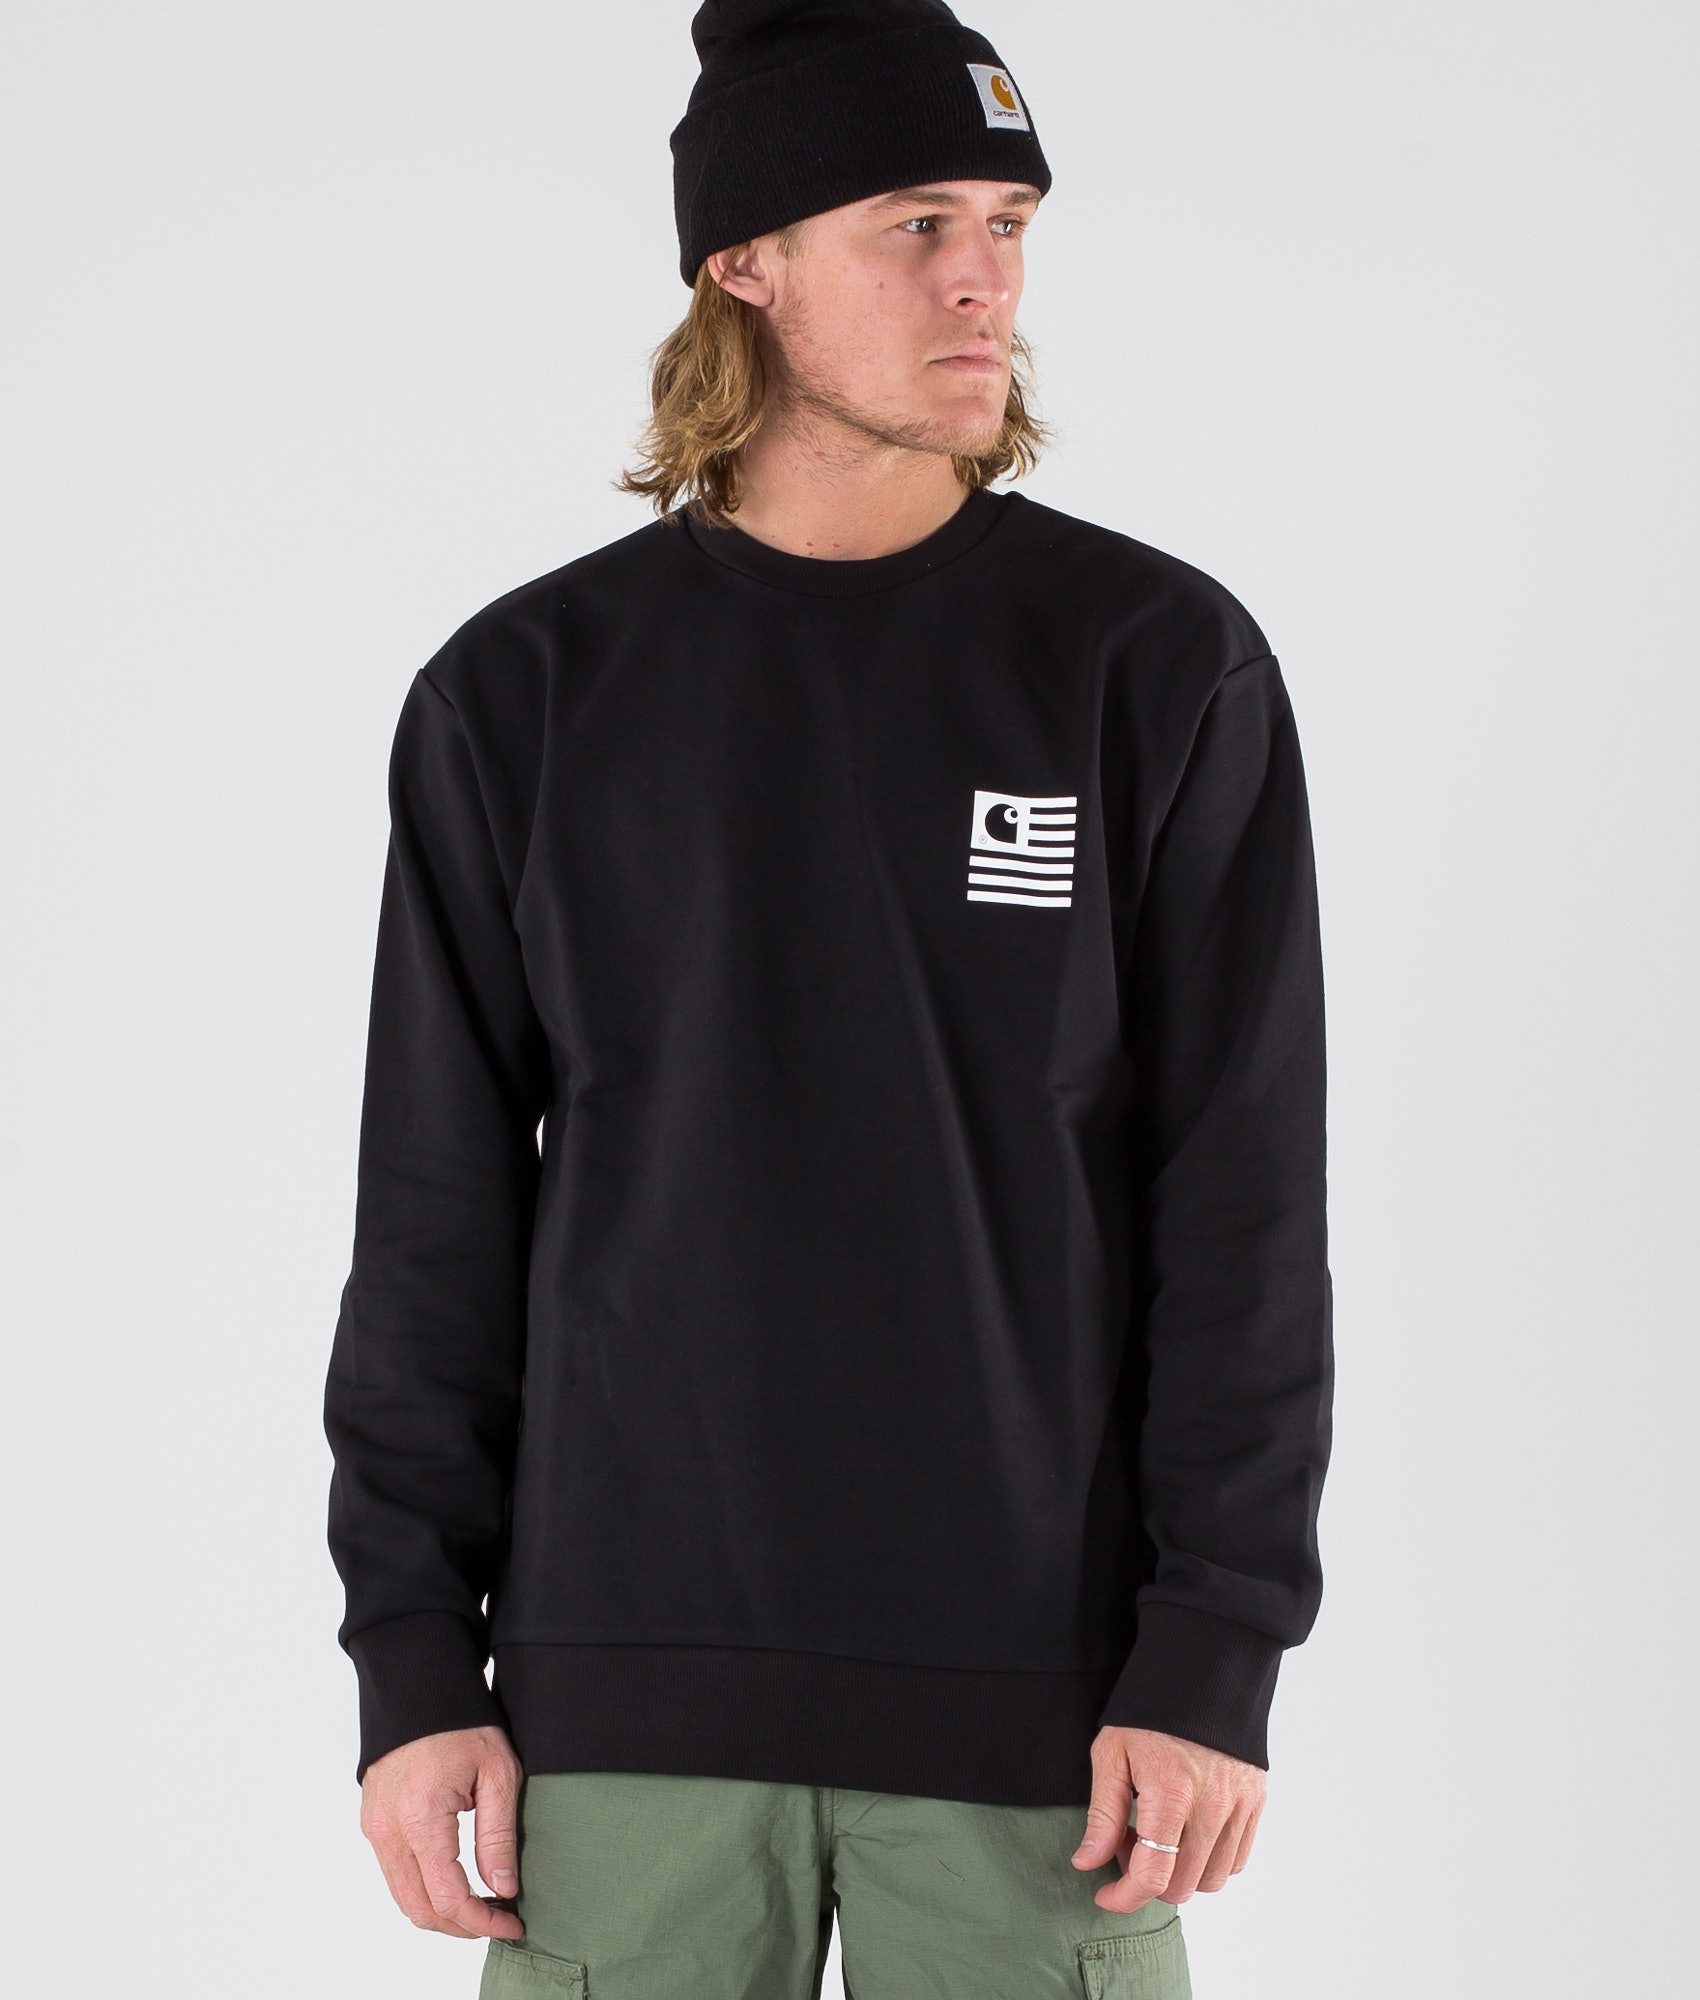 aee755bc Carhartt State Patch Sweat Sweater Black - Ridestore.com